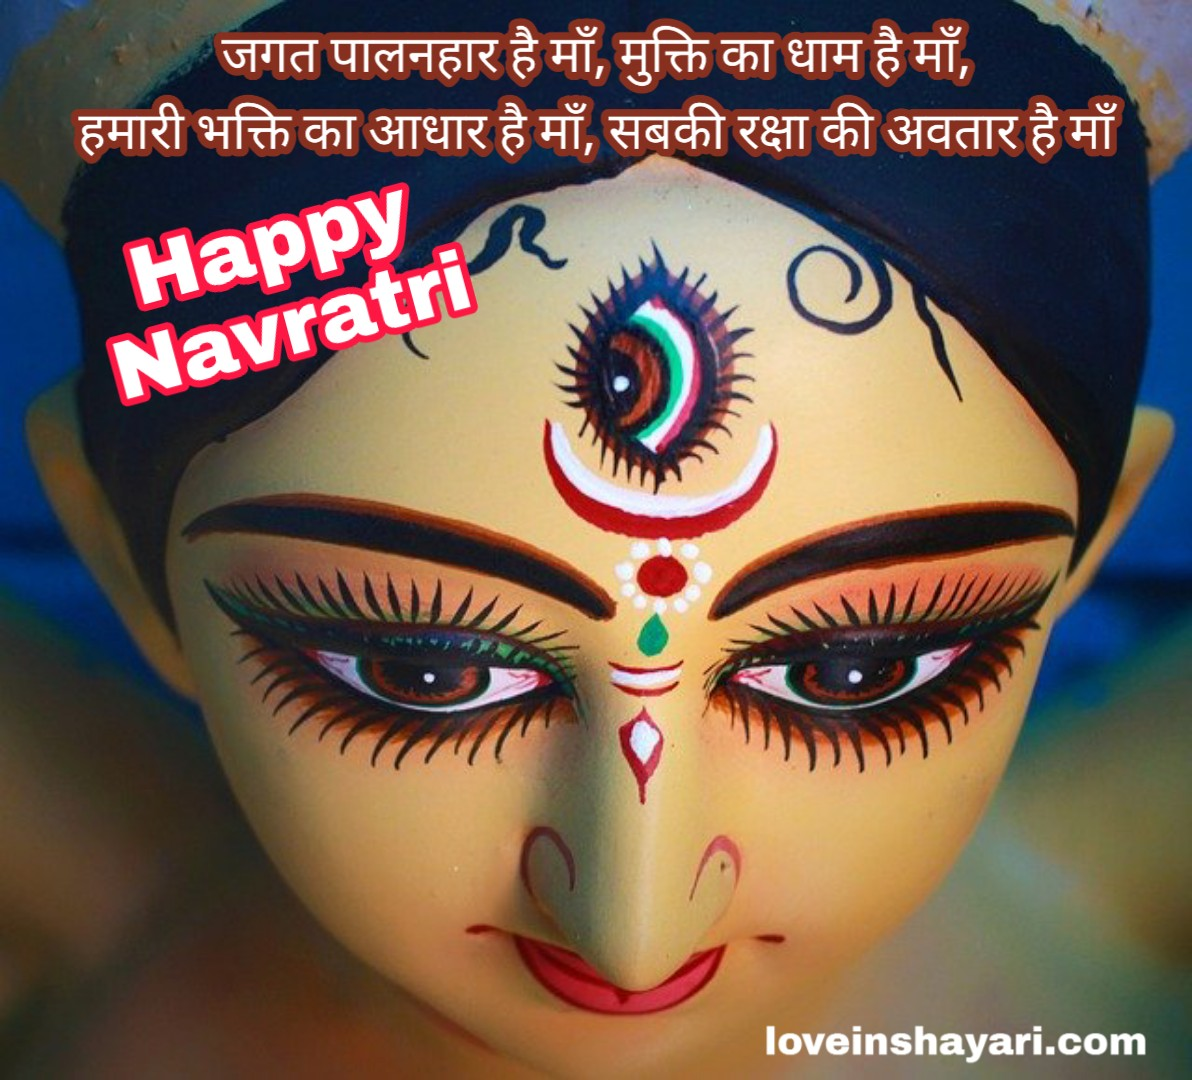 Photo of Navratri status whatsapp status 2020